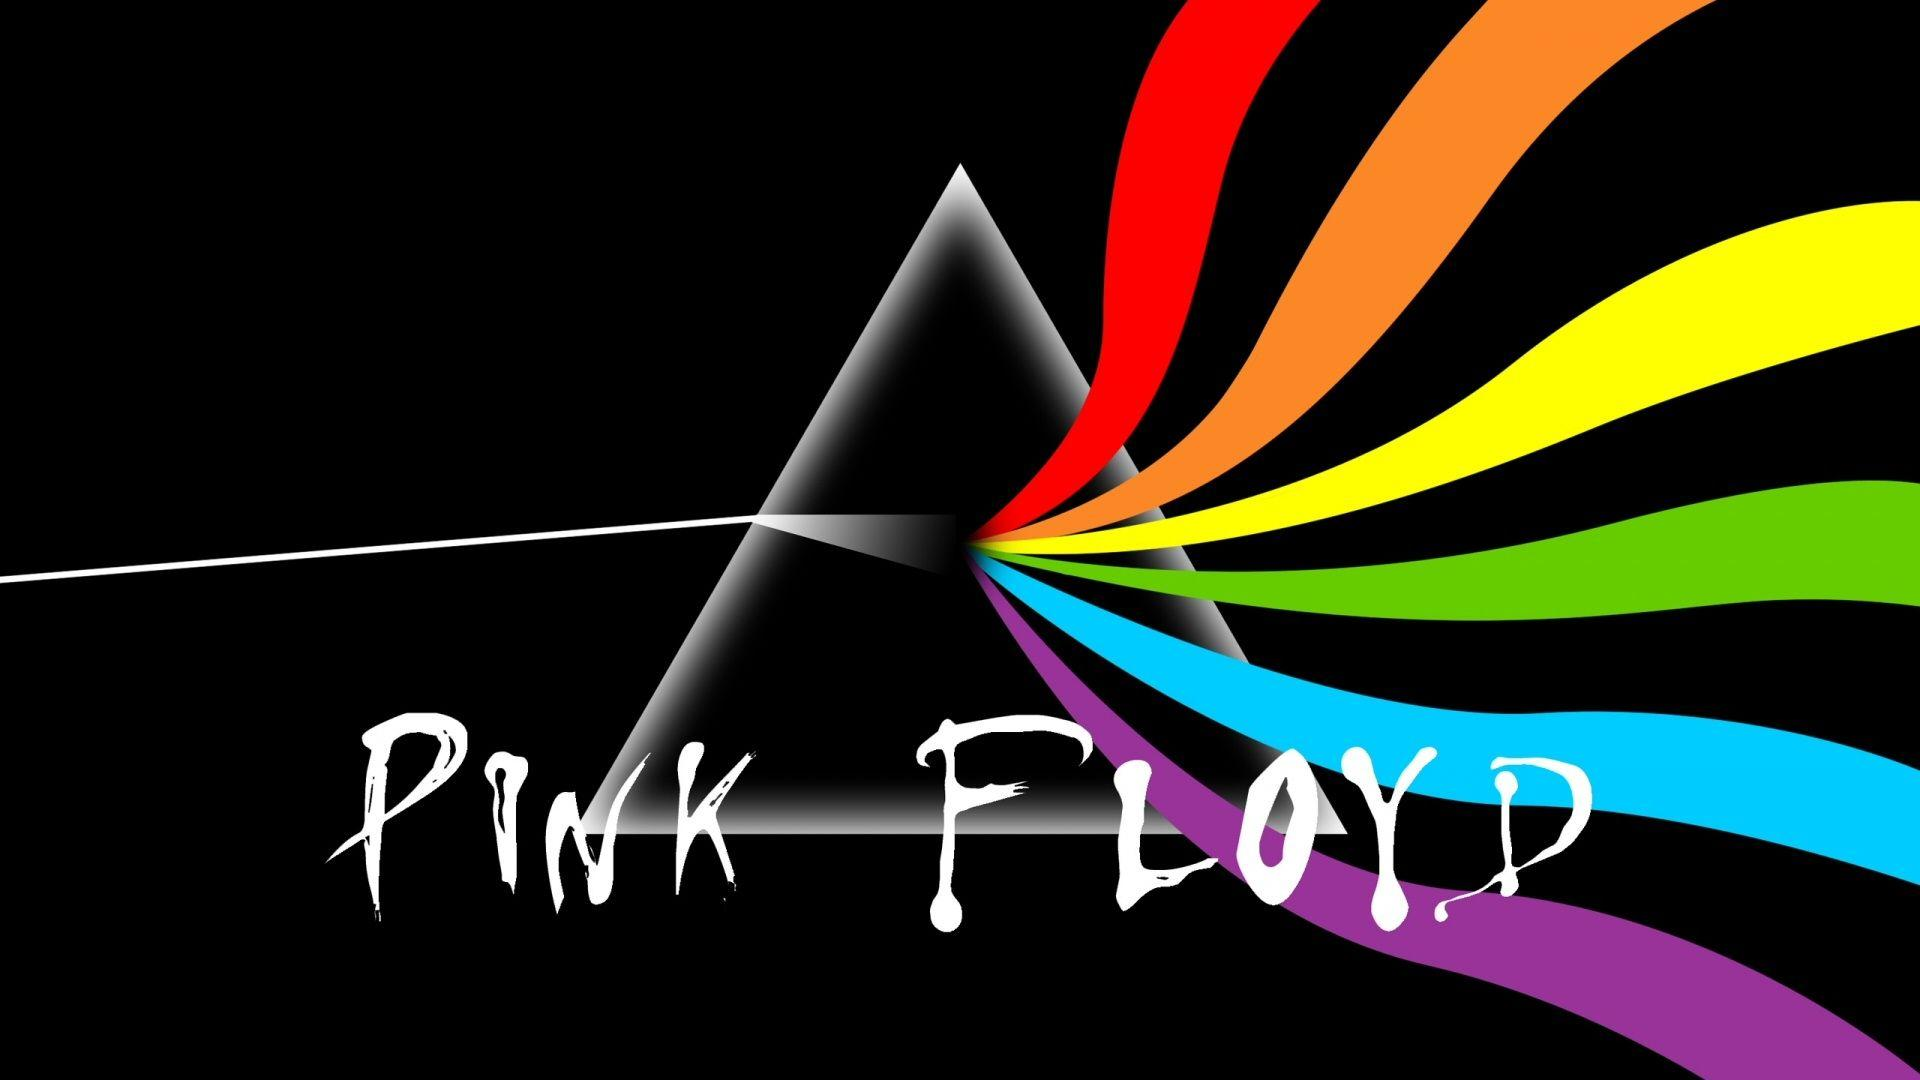 Pink floyd animals wallpapers wallpaper cave - Pink floyd images high resolution ...